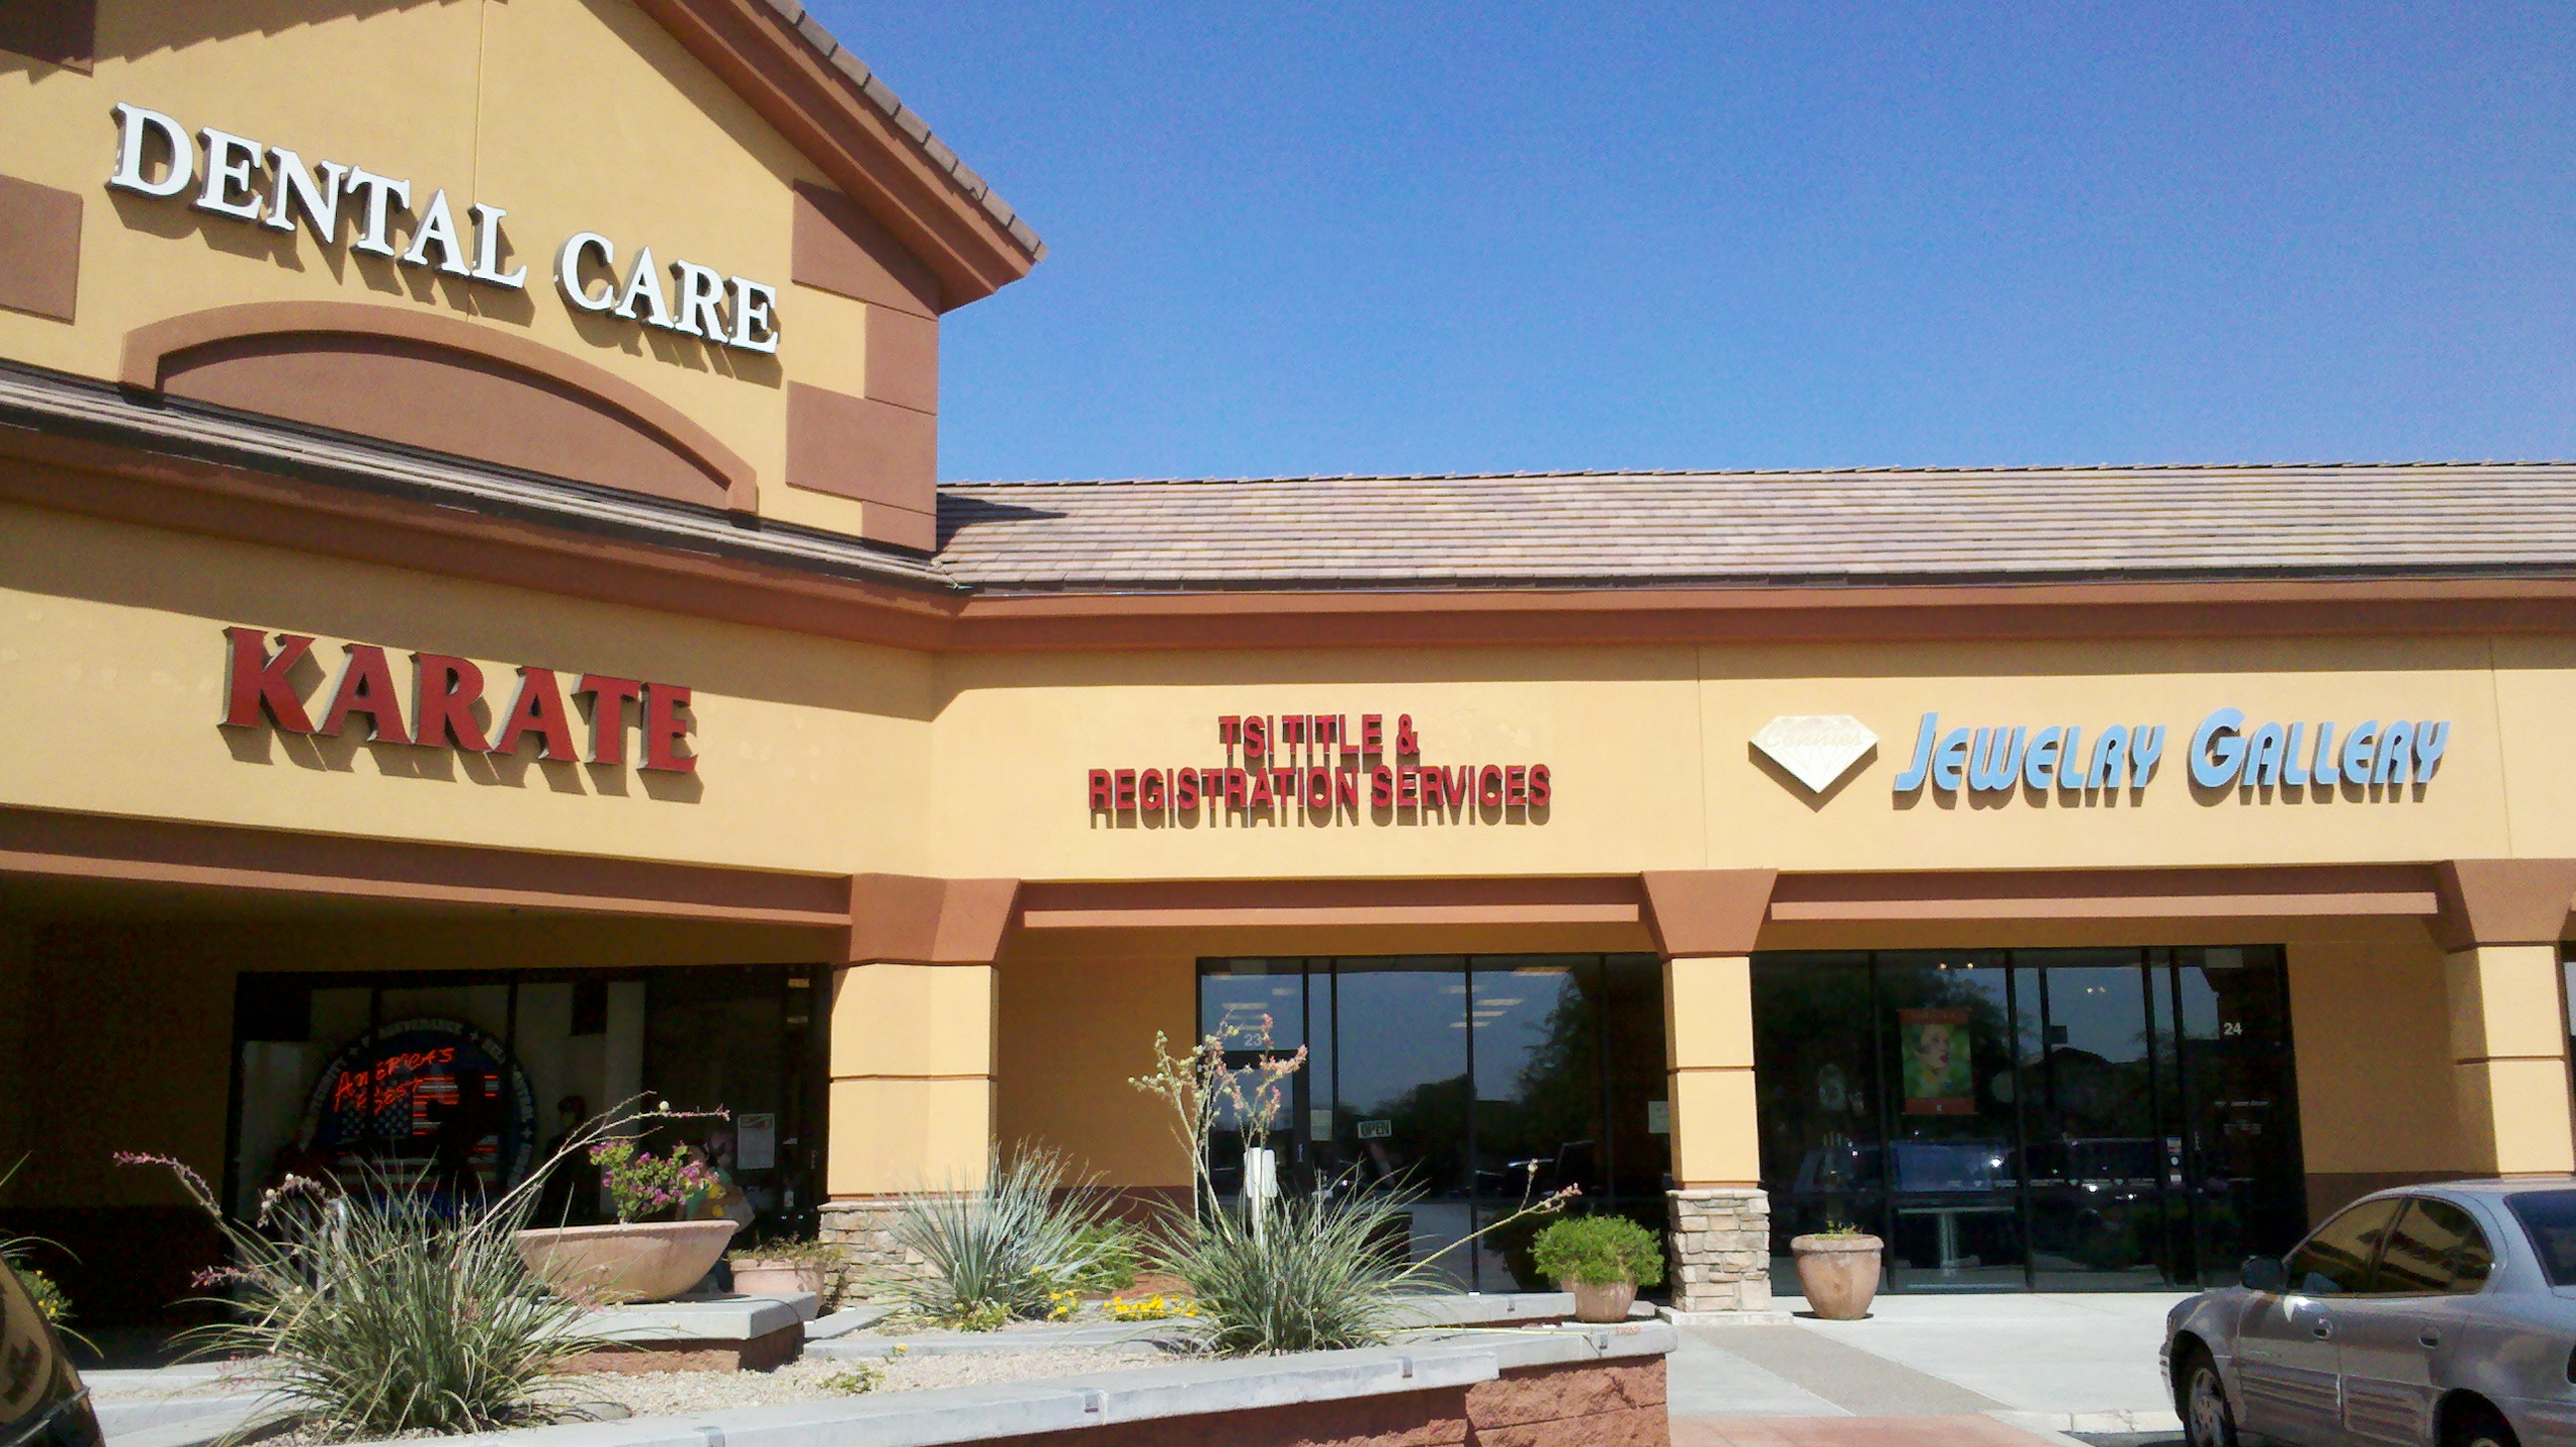 Tsi title registration services in chandler az whitepages for Department of motor vehicles chandler az